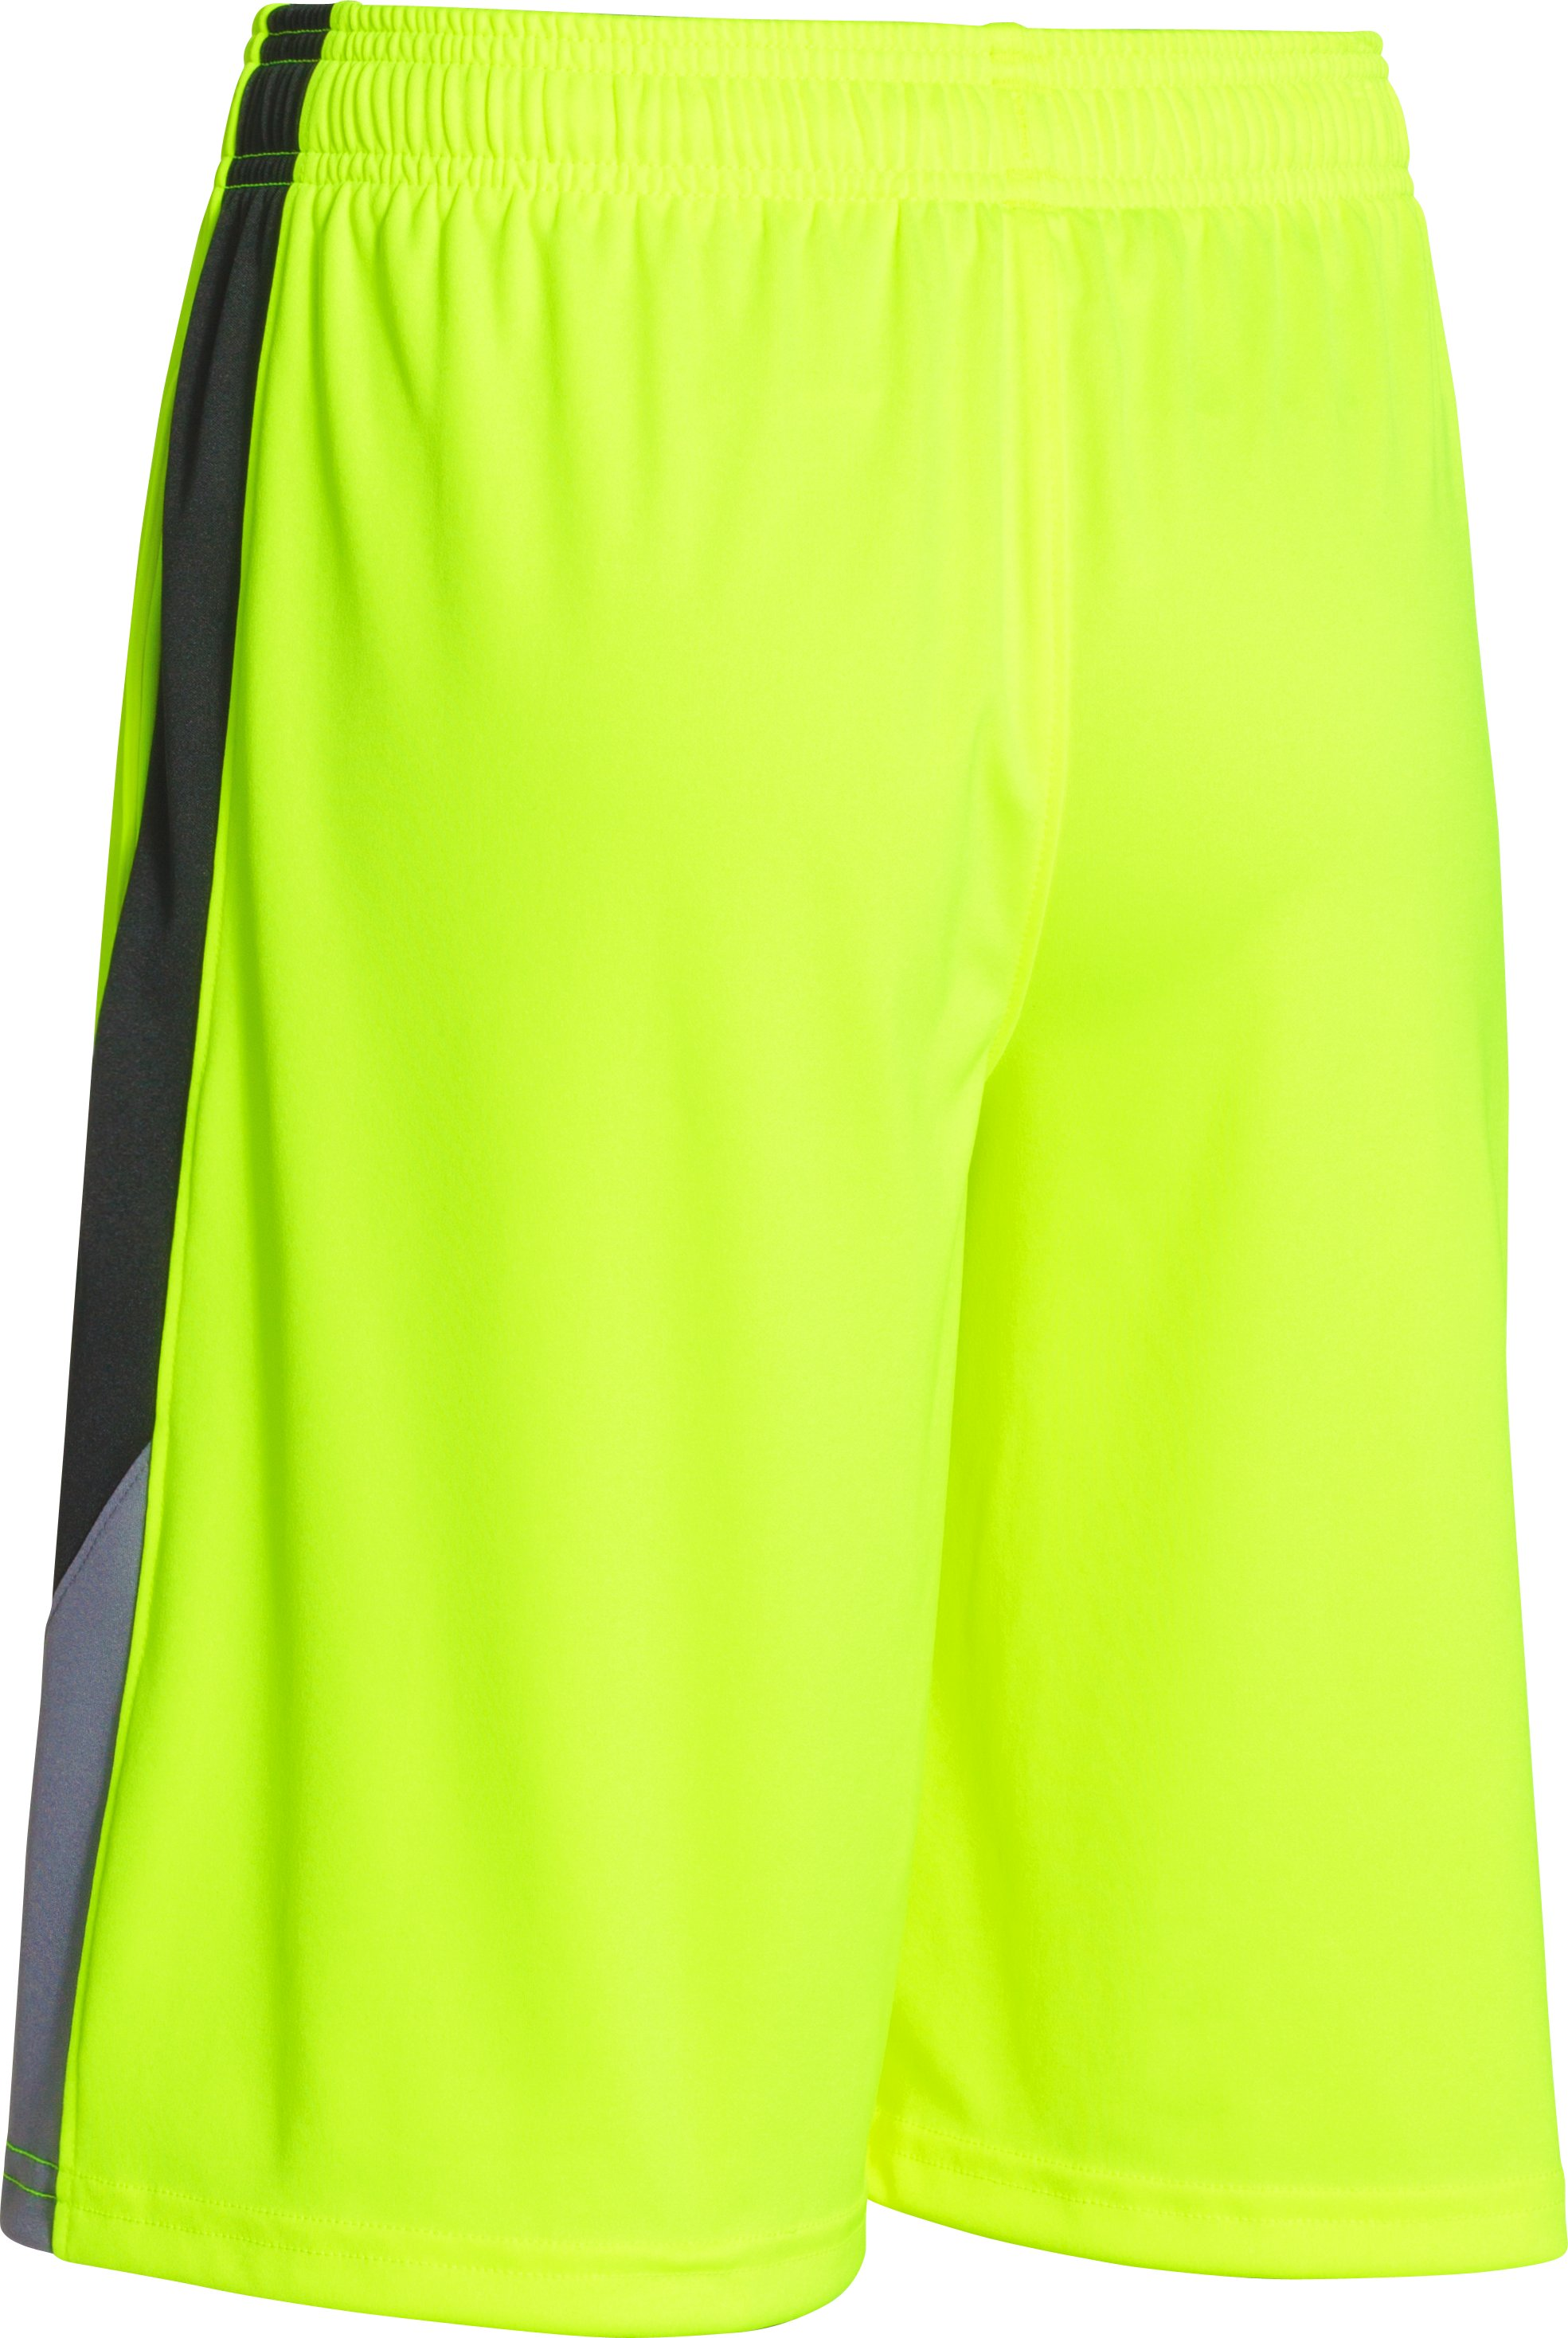 Boys' UA Extreme Shorts, High-Vis Yellow, undefined